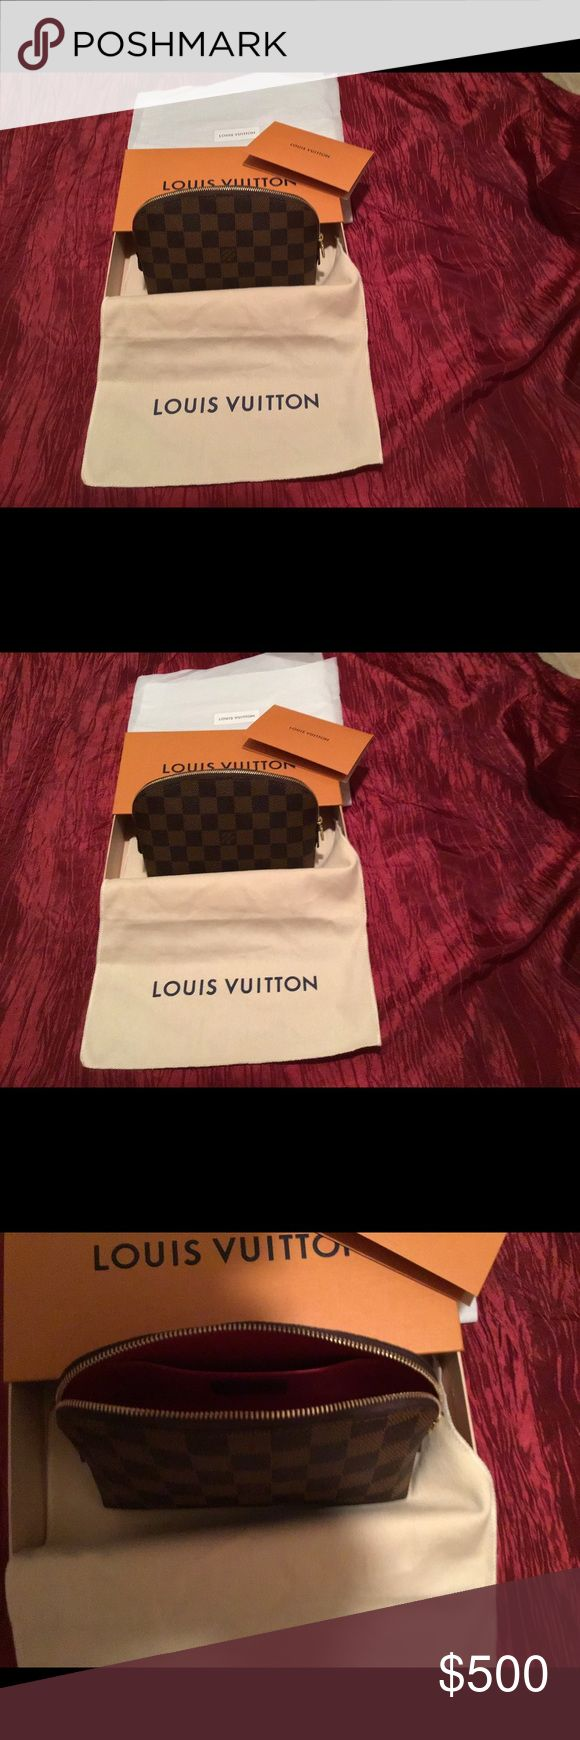 Authentic Louis Vuitton cosmetics pouch. Brand new and